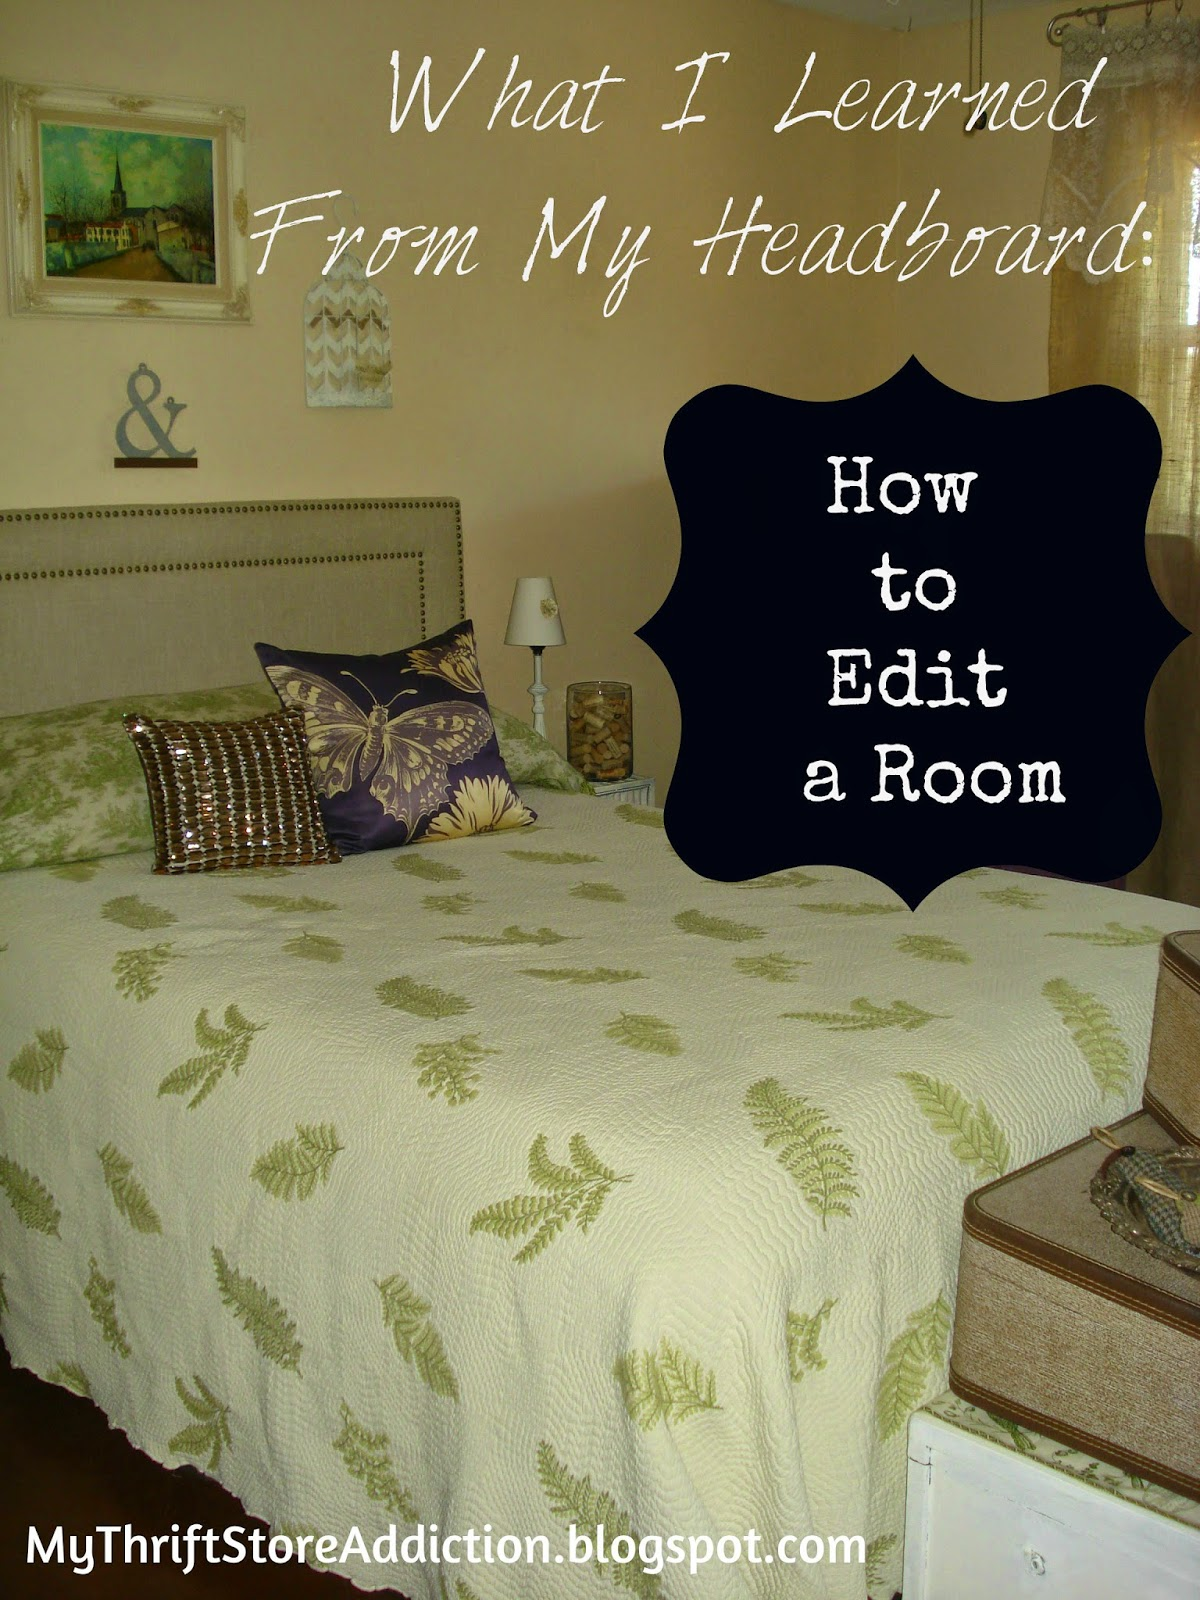 How to edit a room